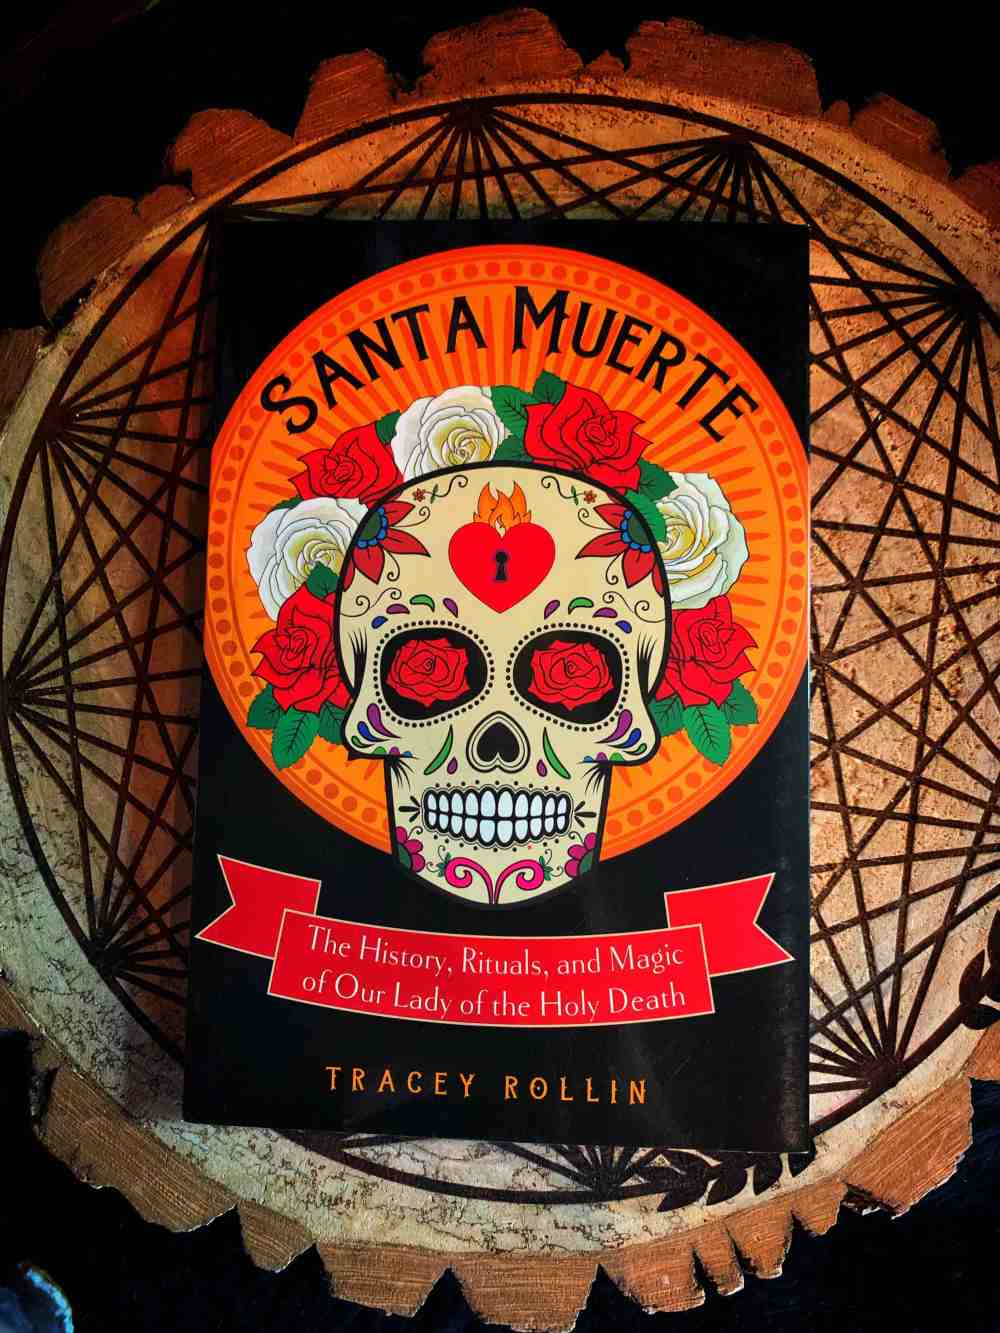 Santa Muerte: The History Rituals, and Magic of Our Lady of the Holy Death